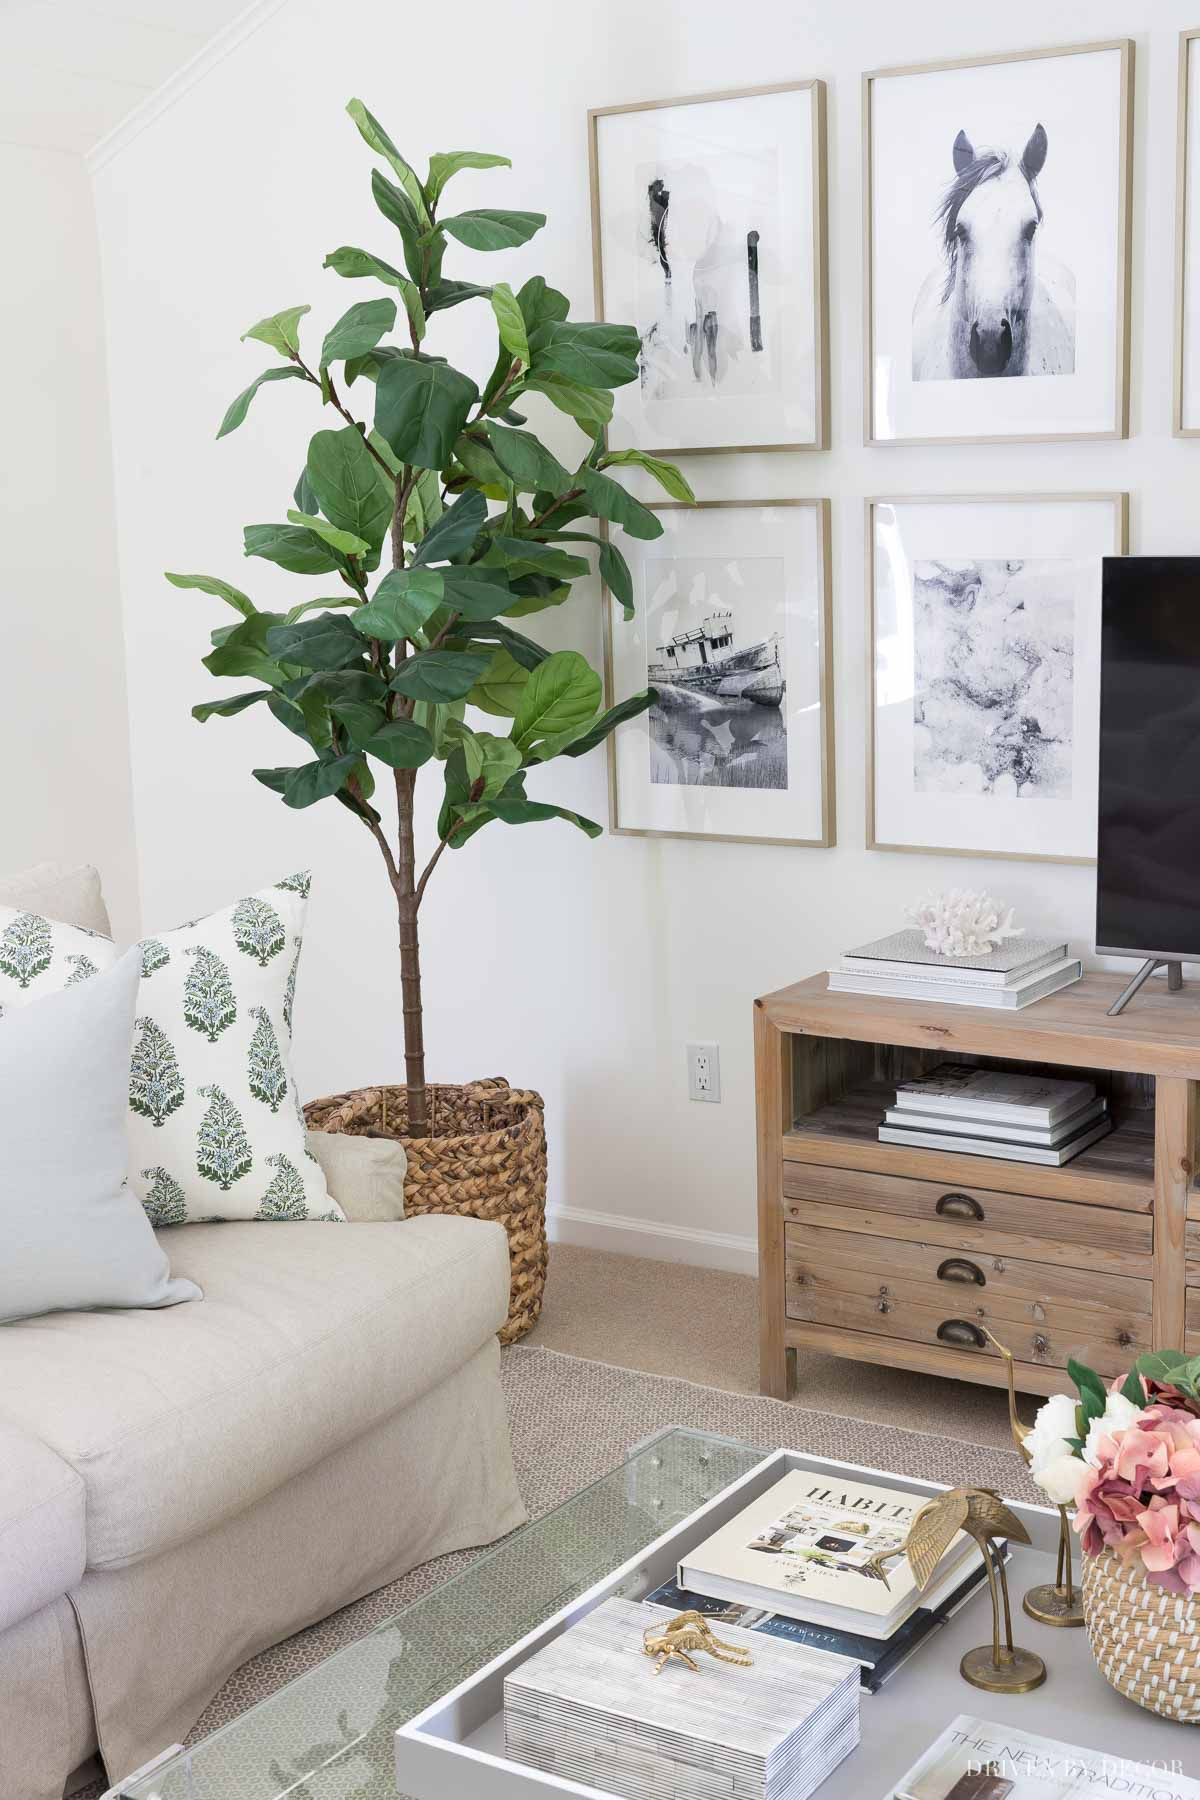 This artificial fiddle leaf fig tree is the most realistic one I've seen!